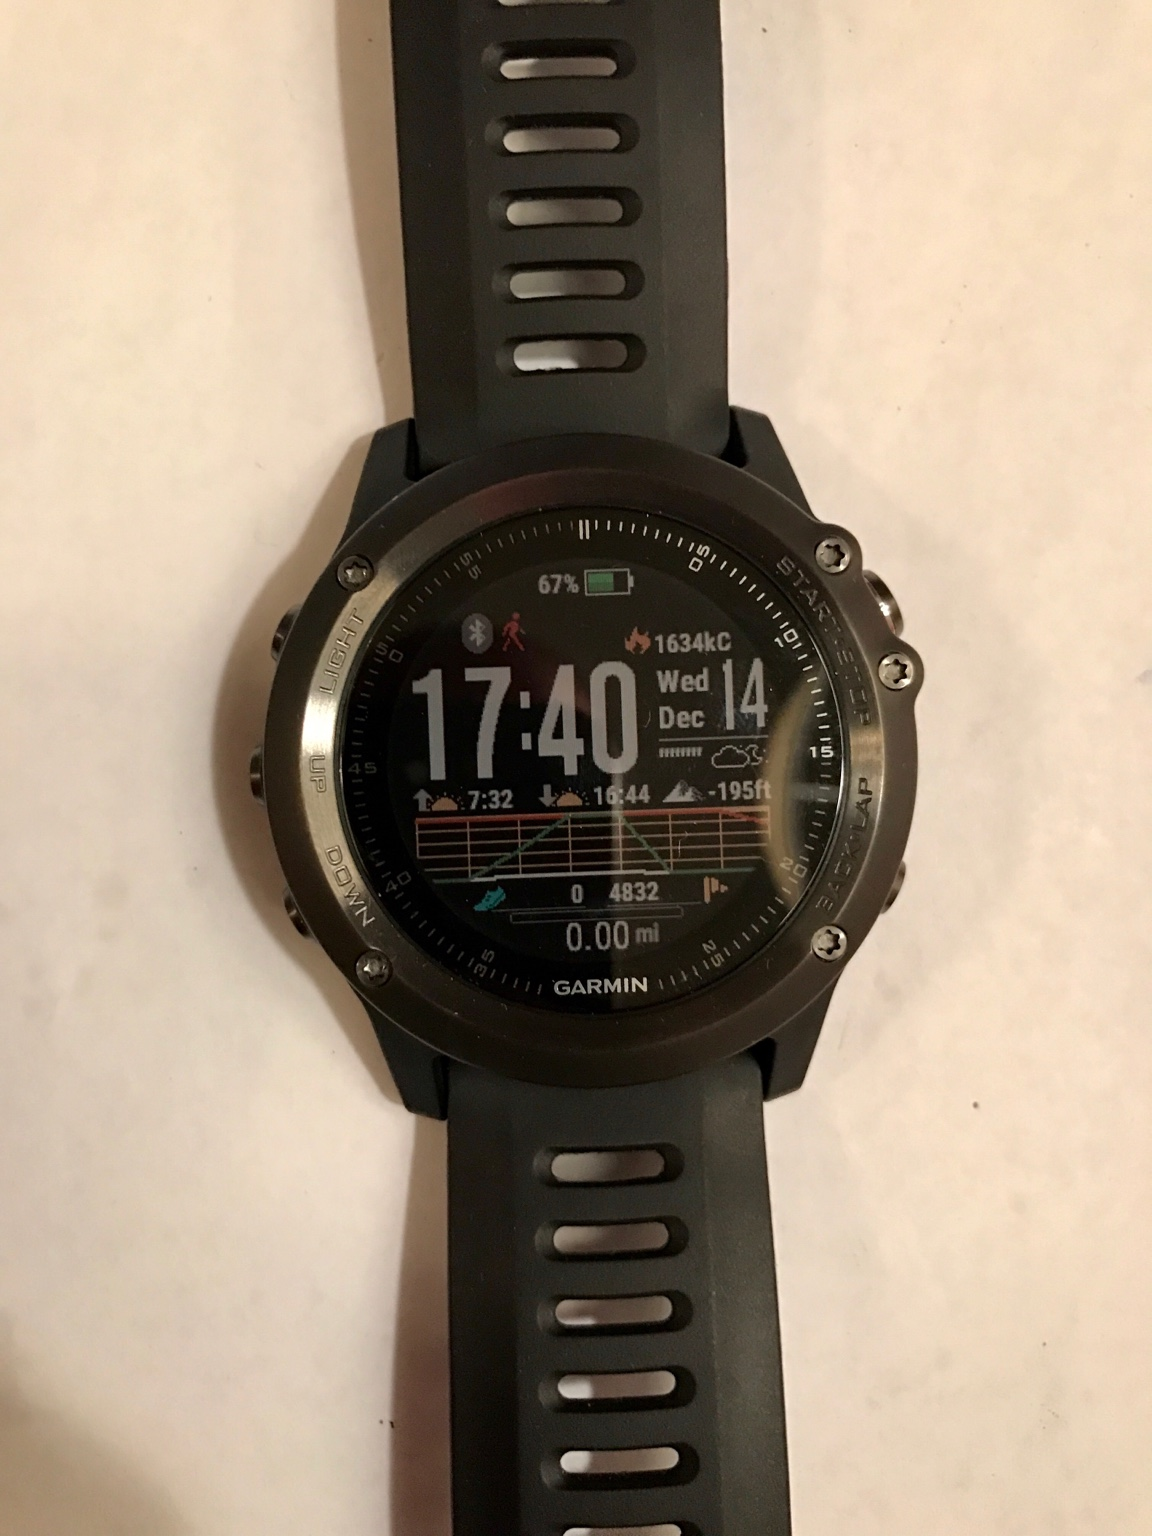 how to find a lost garmin watch